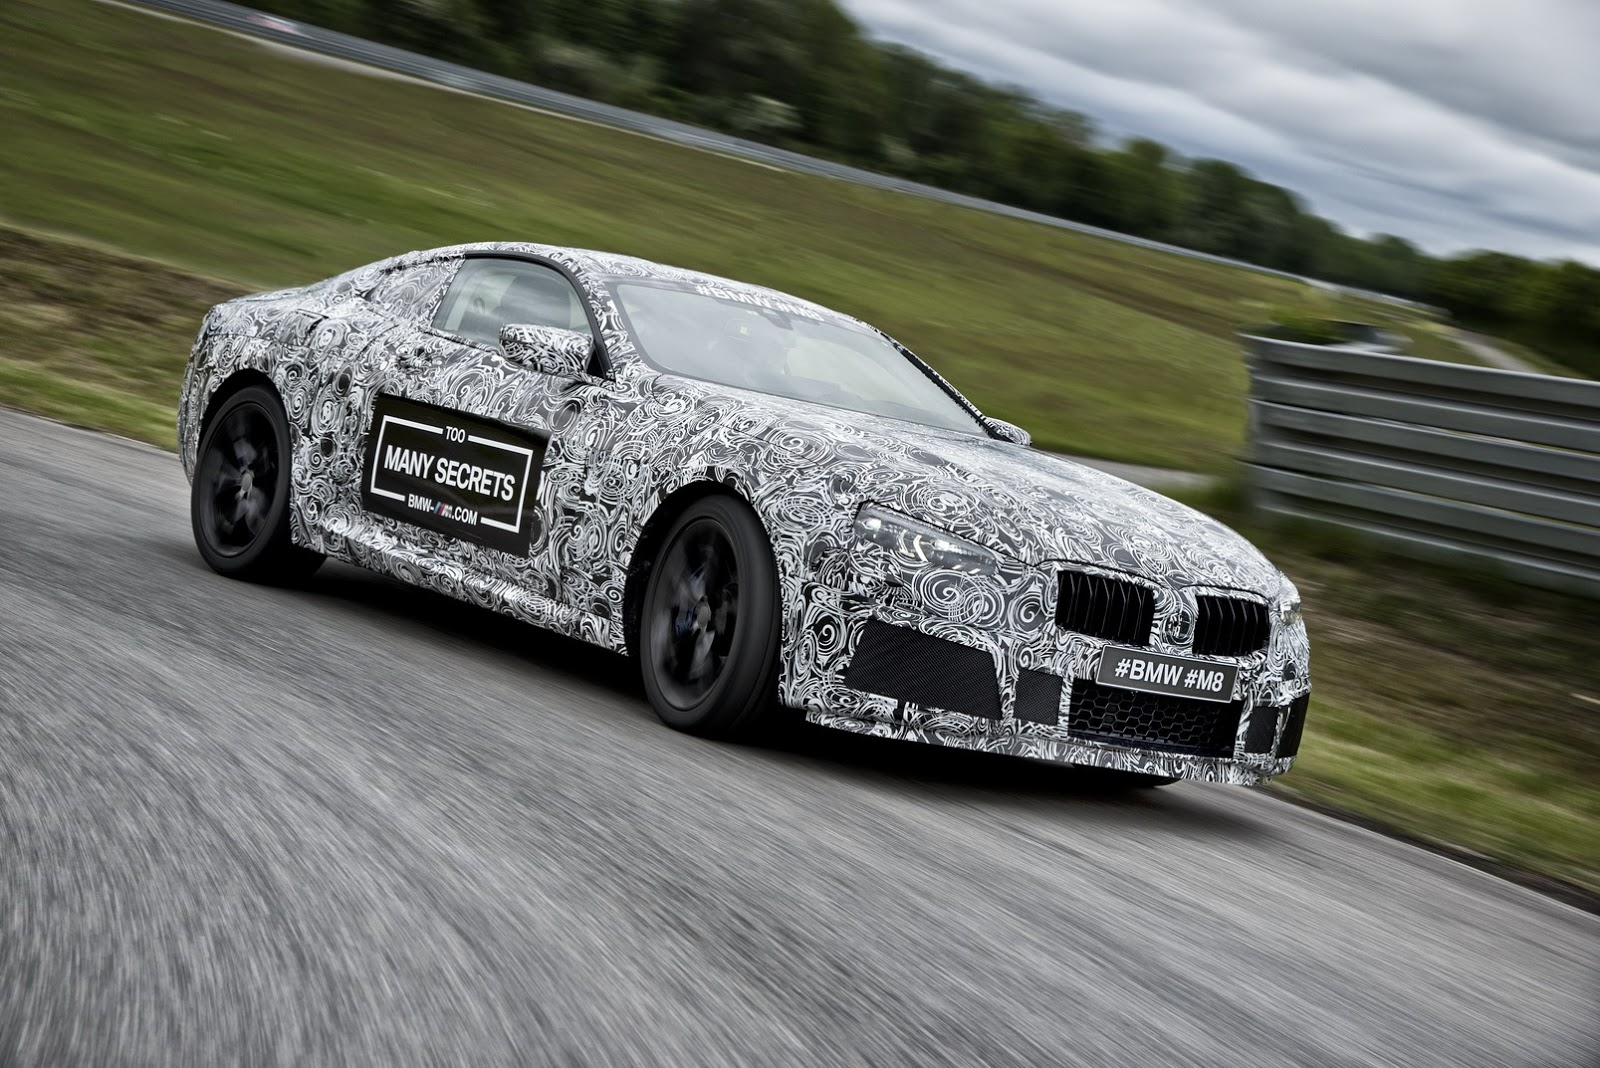 Bmw Concept Car Wallpaper It S Official A Bmw M8 Is Happening And This Is It